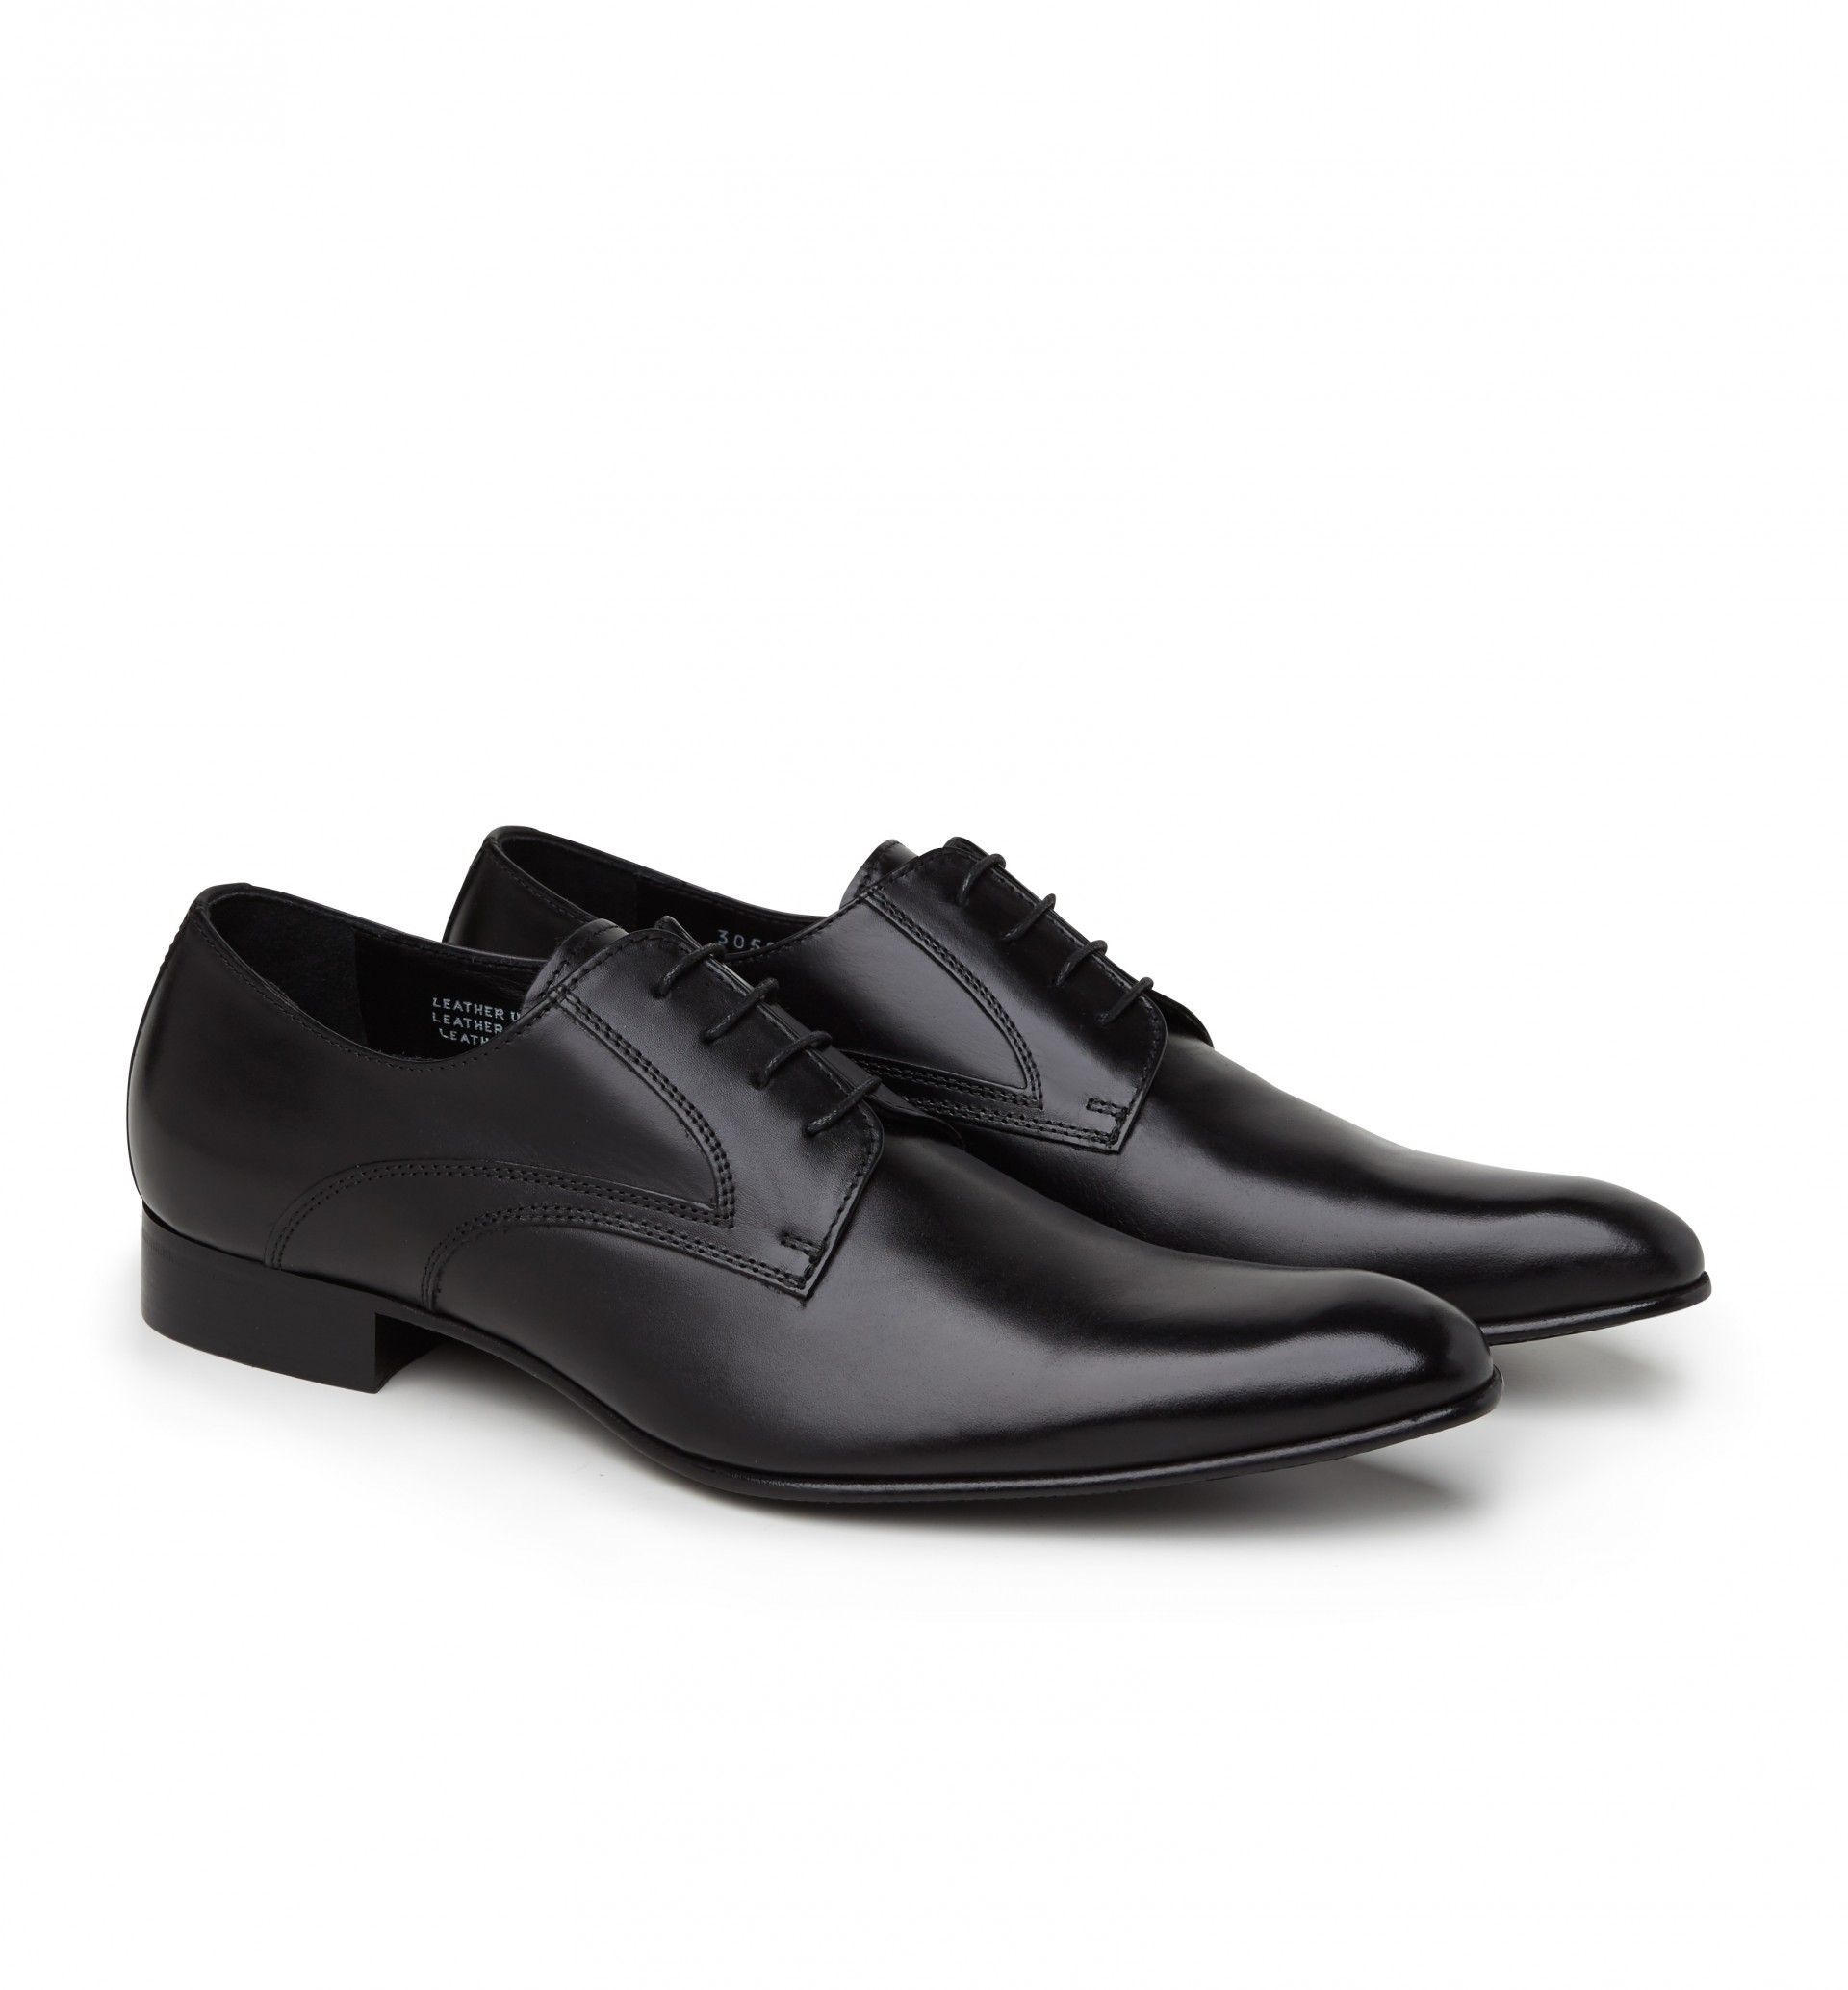 Sharp Leather Lace Up In Black Dress Shoes Men Best Dress Shoes Leather And Lace [ 2067 x 1920 Pixel ]